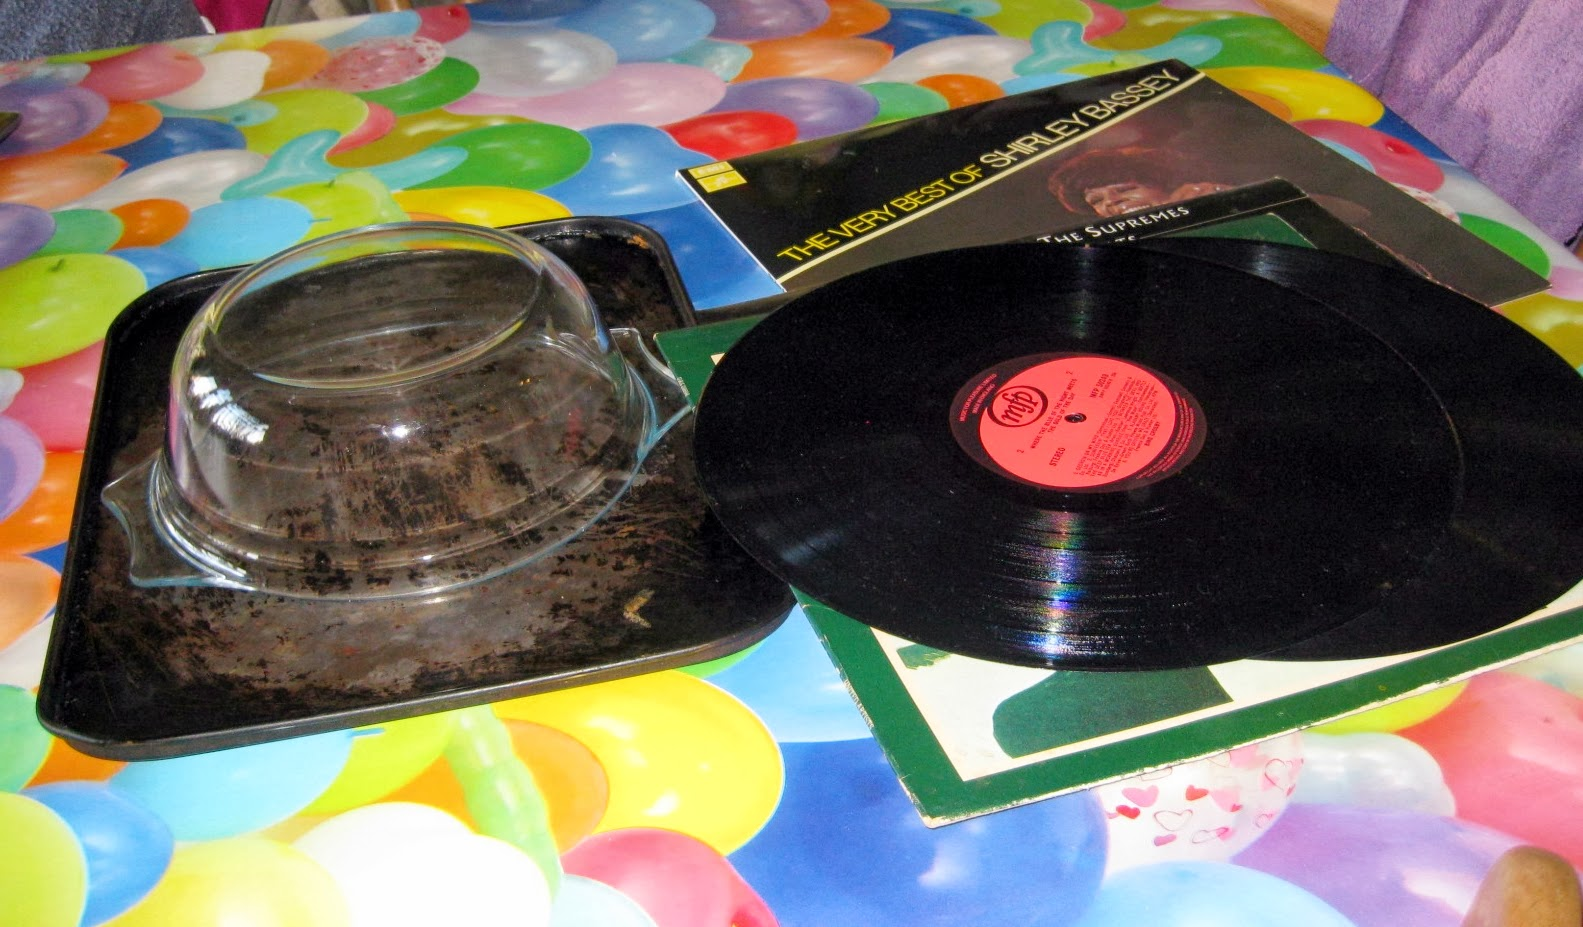 Martisanne Handmade Diy How To Make A Vinyl Record Bowl